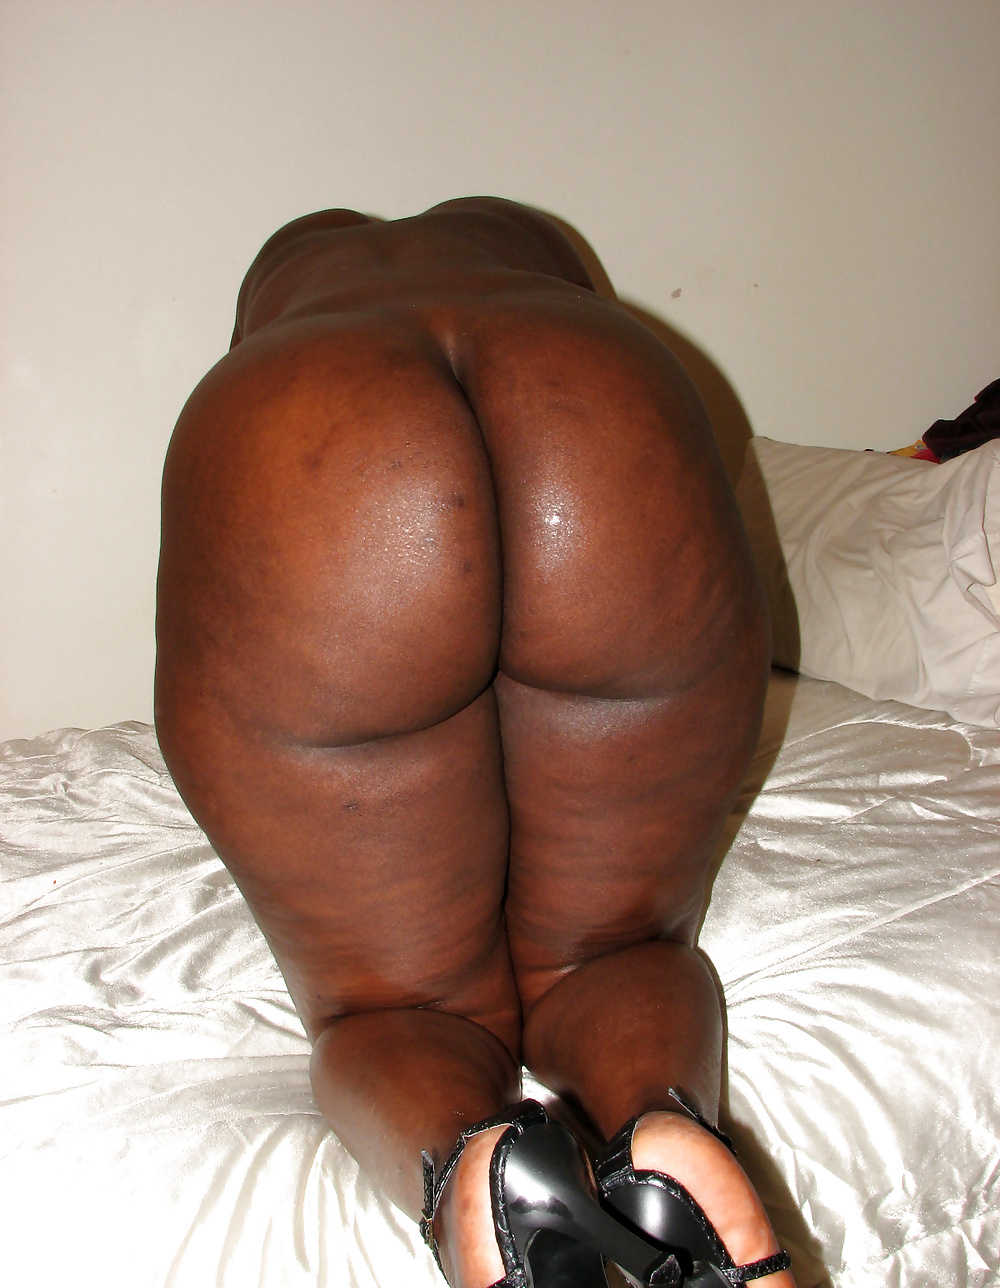 Big fat ass bootys, daughter losing virginity to daddy tumblr